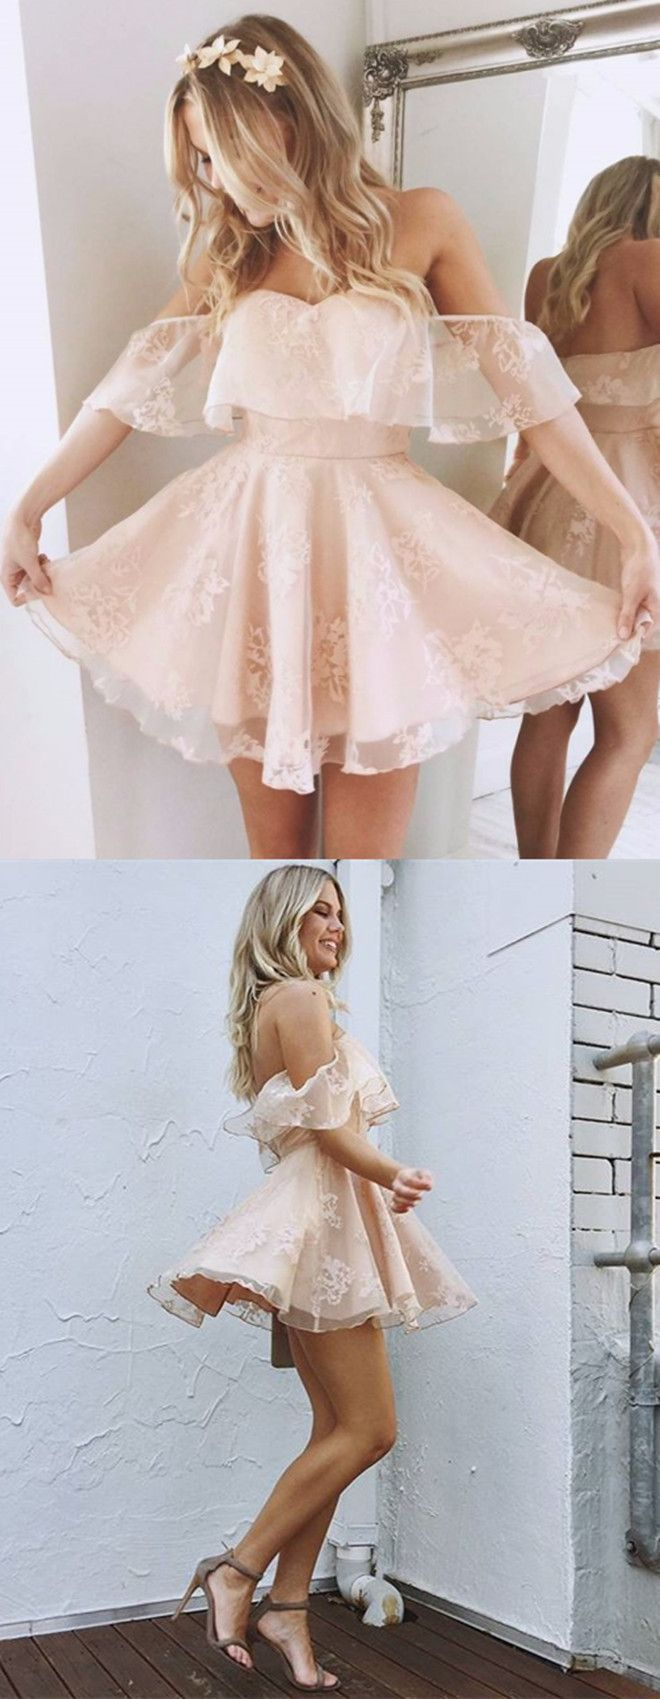 short homecoming dresses,lace homecoming dresses,pink homecoming dresses,2017 homecoming dresses @simpledress2480